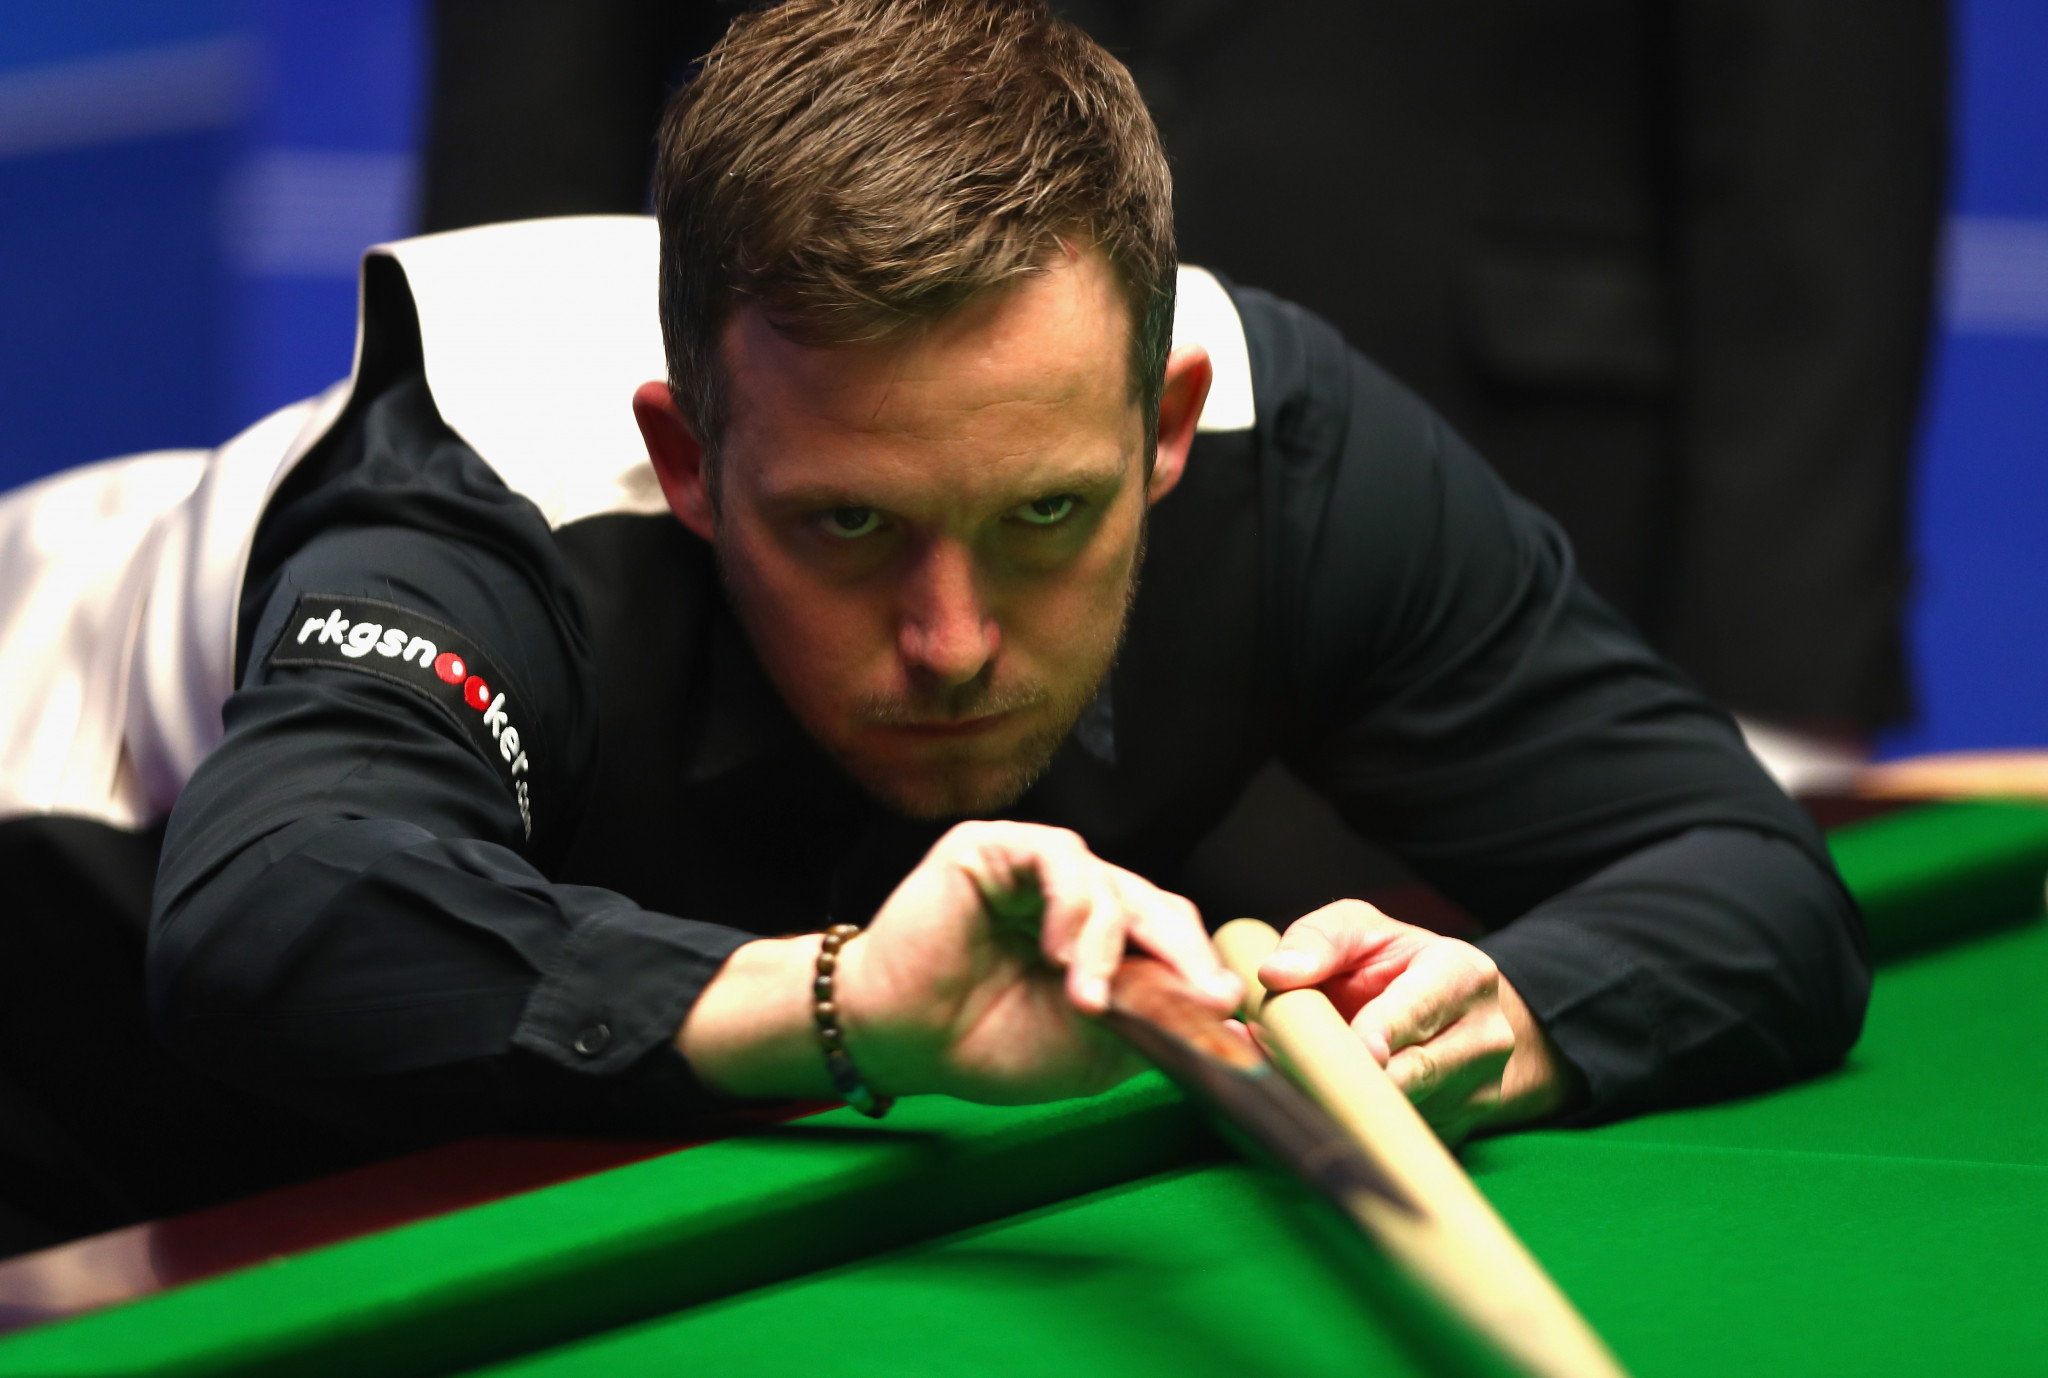 Jamie Jones of Wales has been suspended by the WPBSA pending investigation after allegations arose that he may be connected with match-fixing ©Getty Images